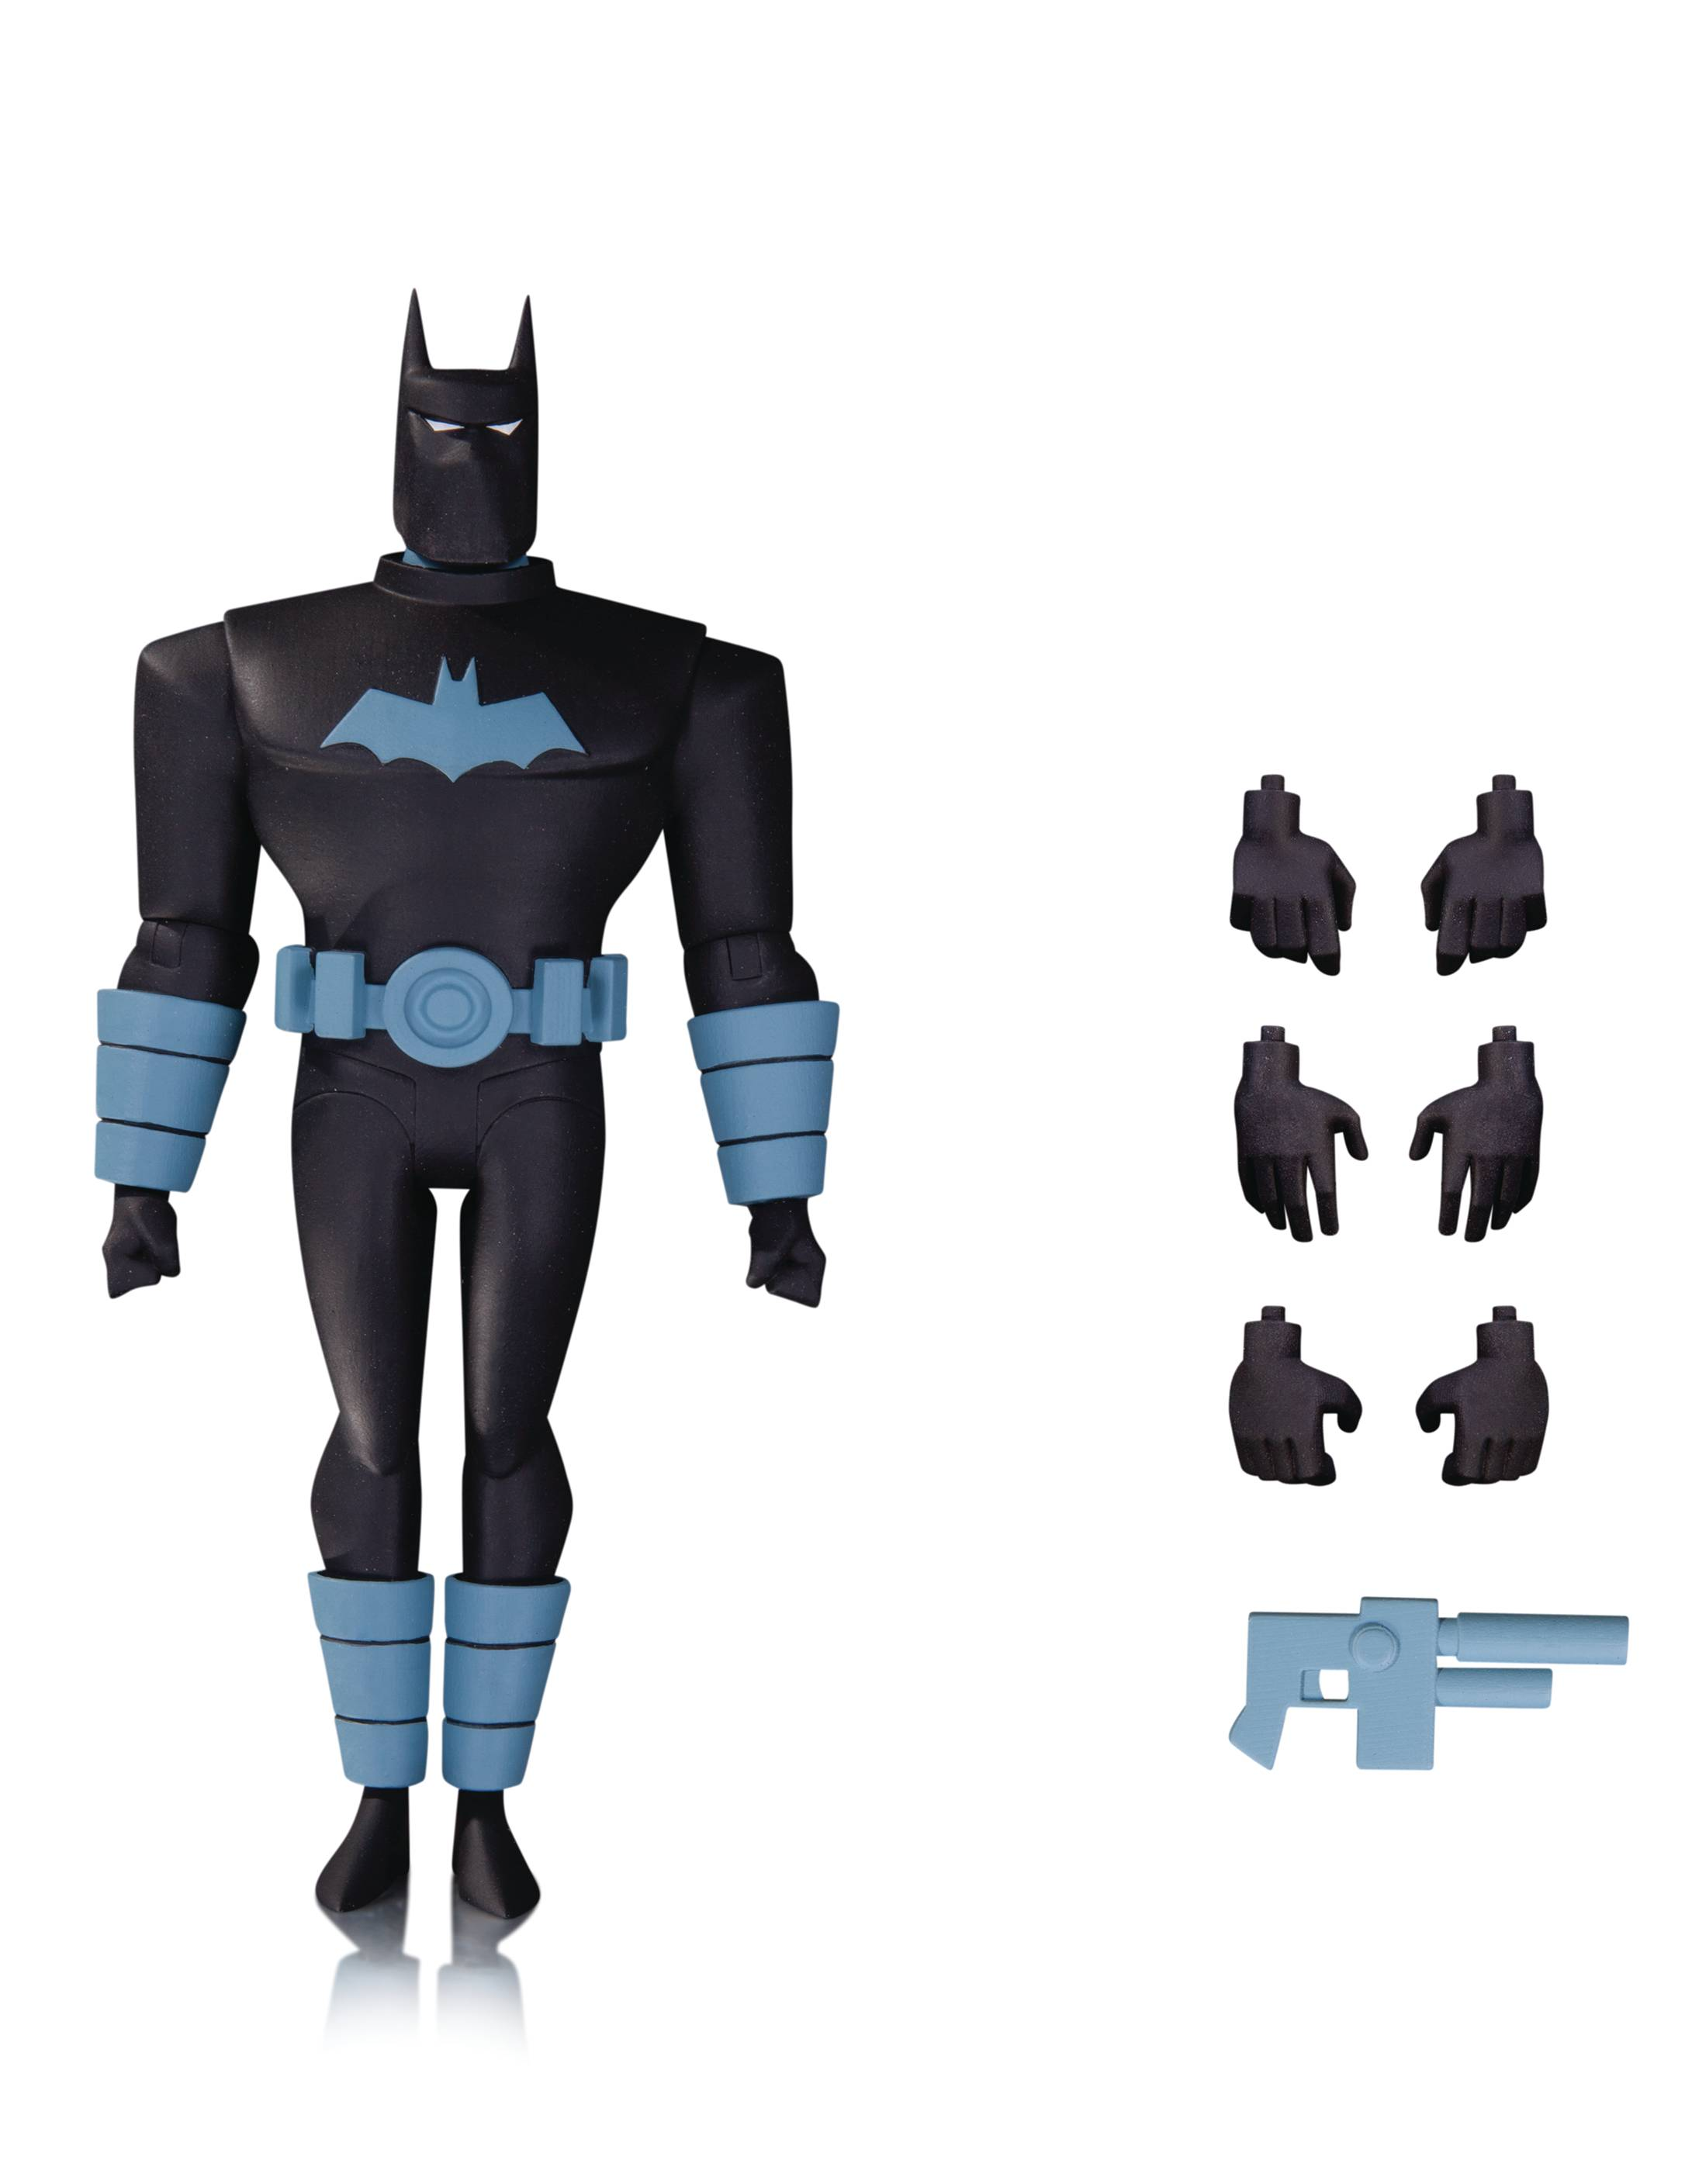 DC Comics Batman Animated Anti-Fire Suit Batman (NBA) Figure